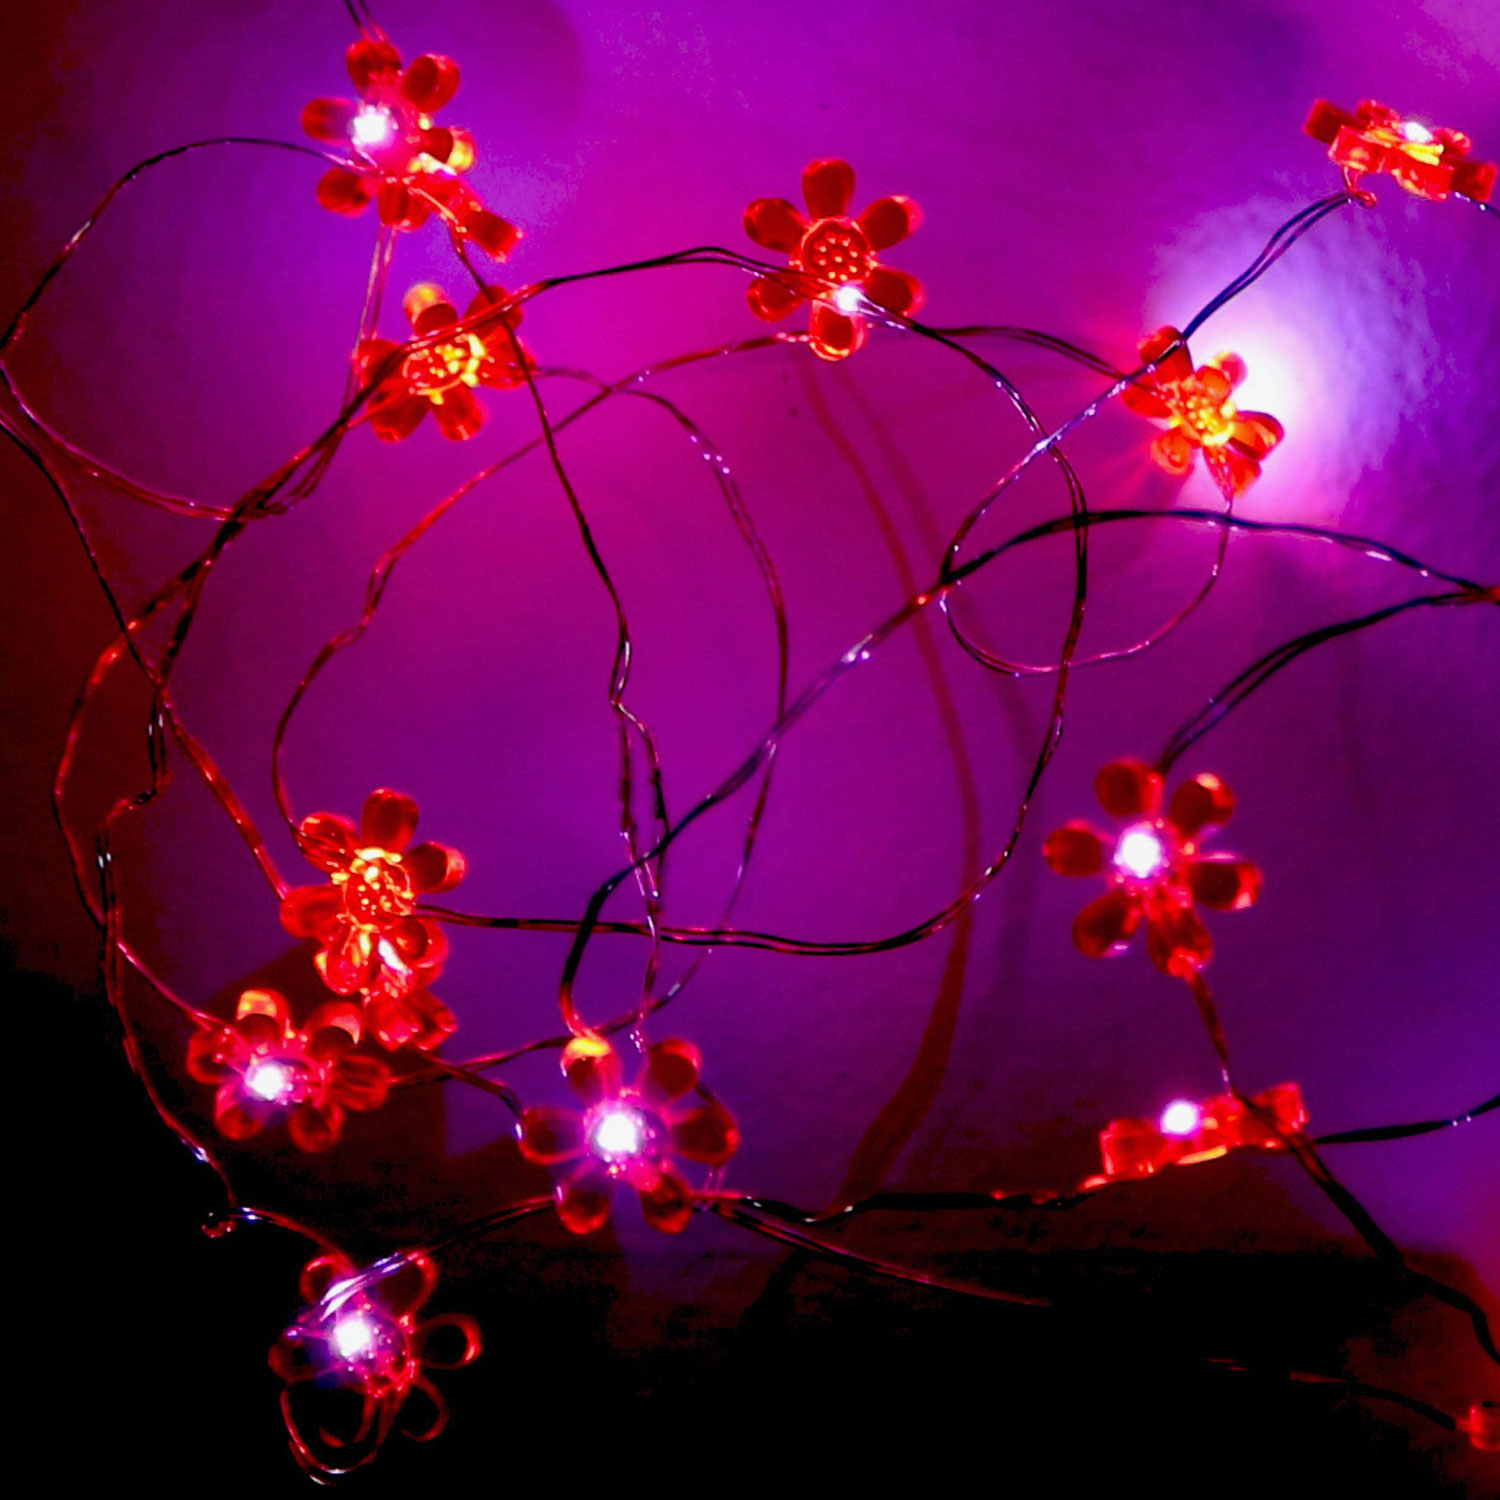 Skusky iCover Battery Operated 10 Foot LED String Lights